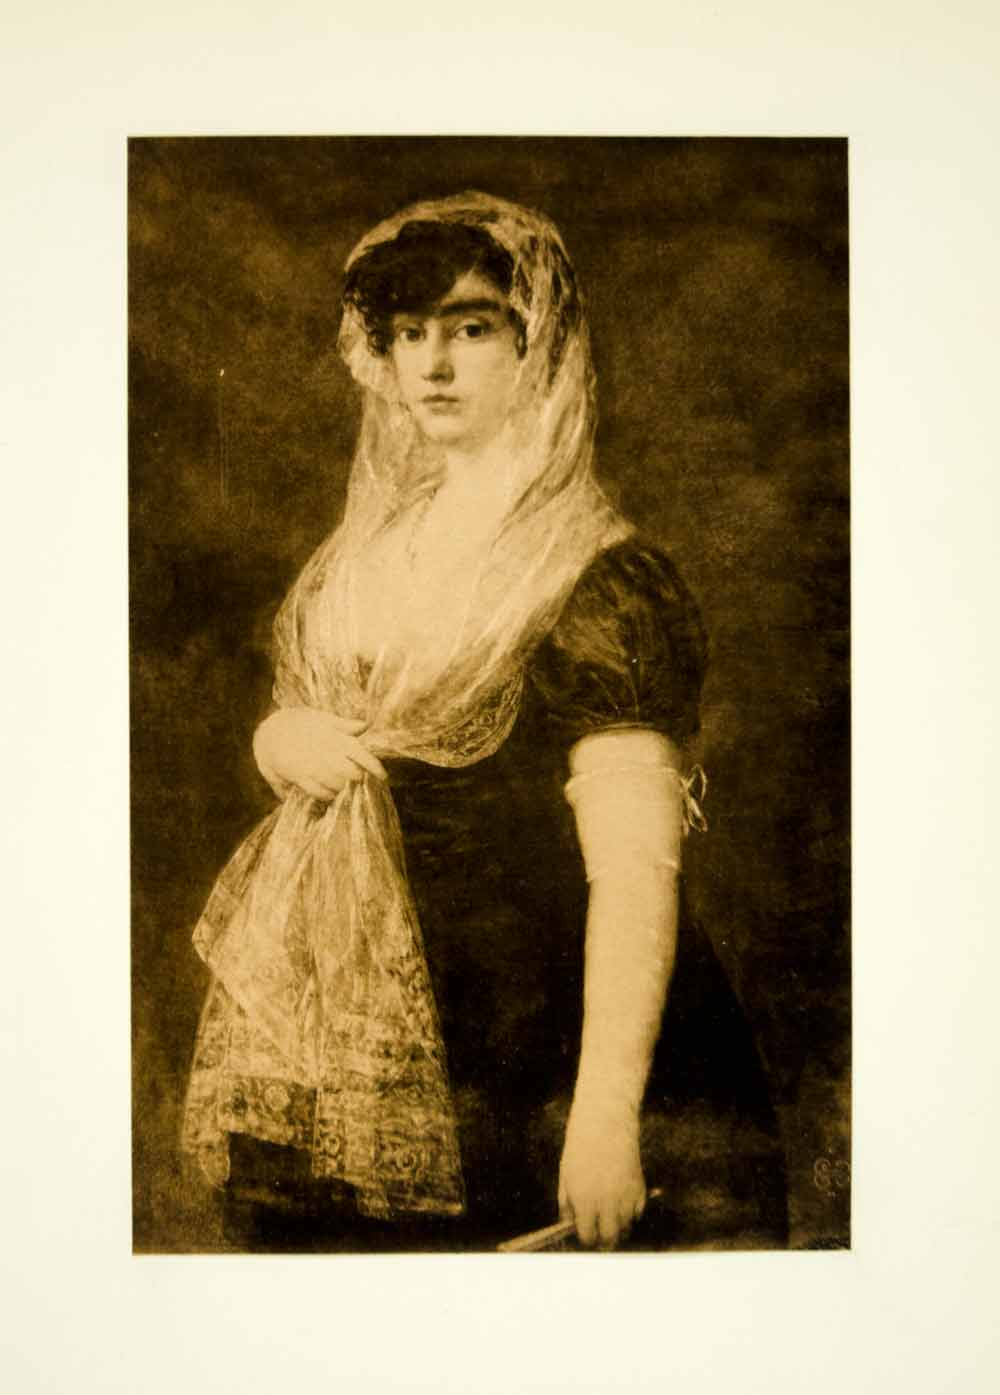 1922 Photogravure Francisco Goya Art Portrait Booksellers Wife Romanticism XAPA8